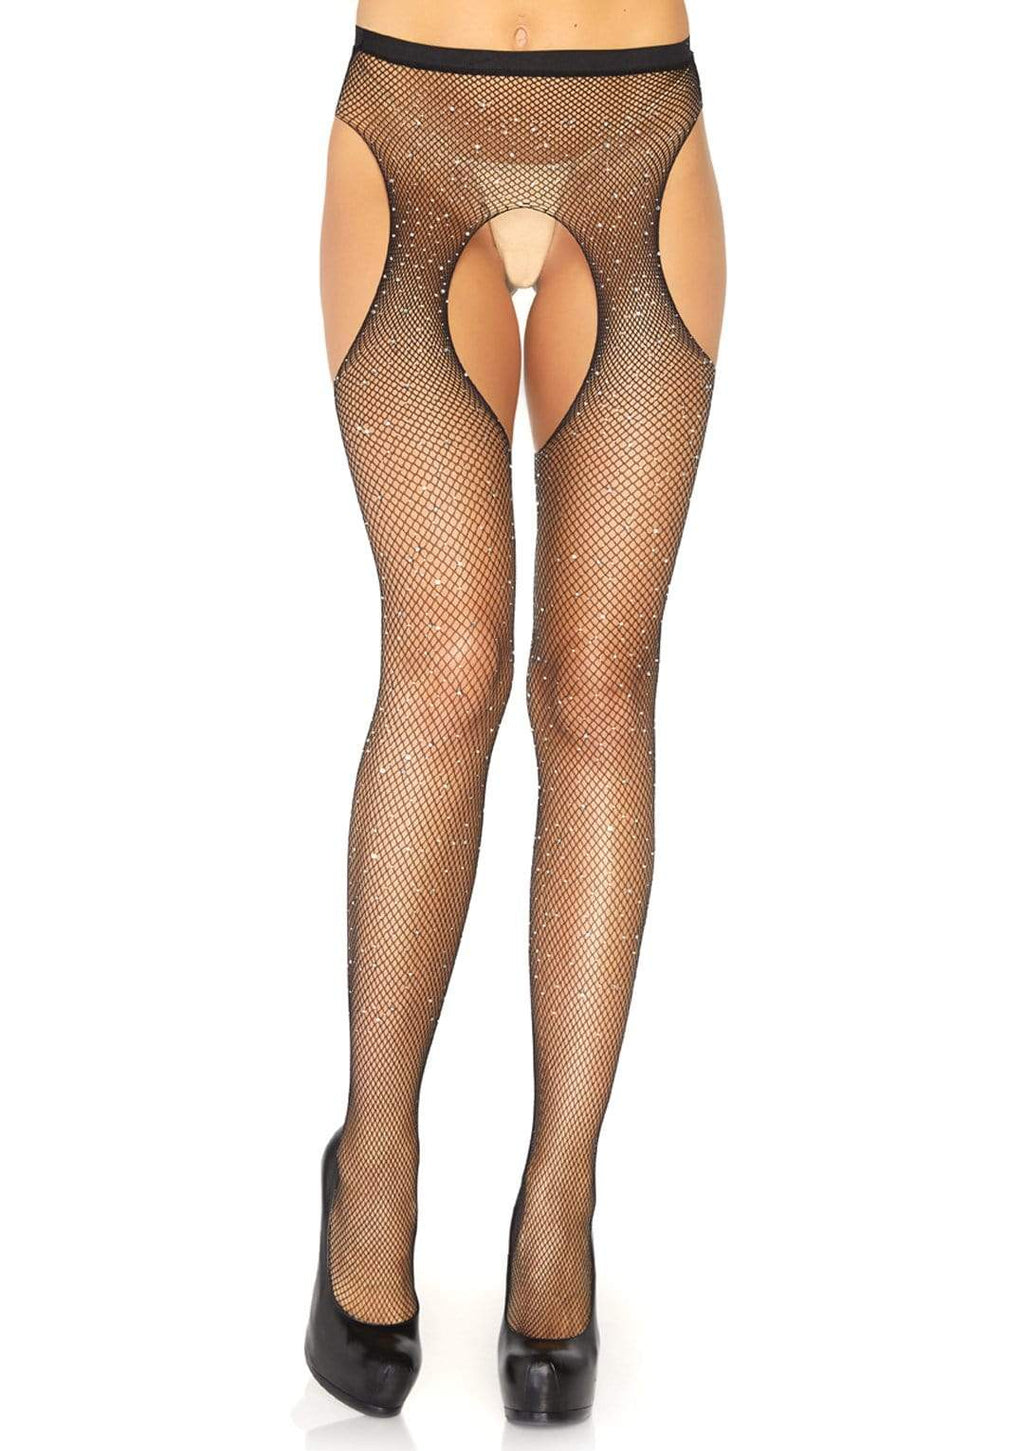 Plus Size Crystal Fishnet Pantyhose